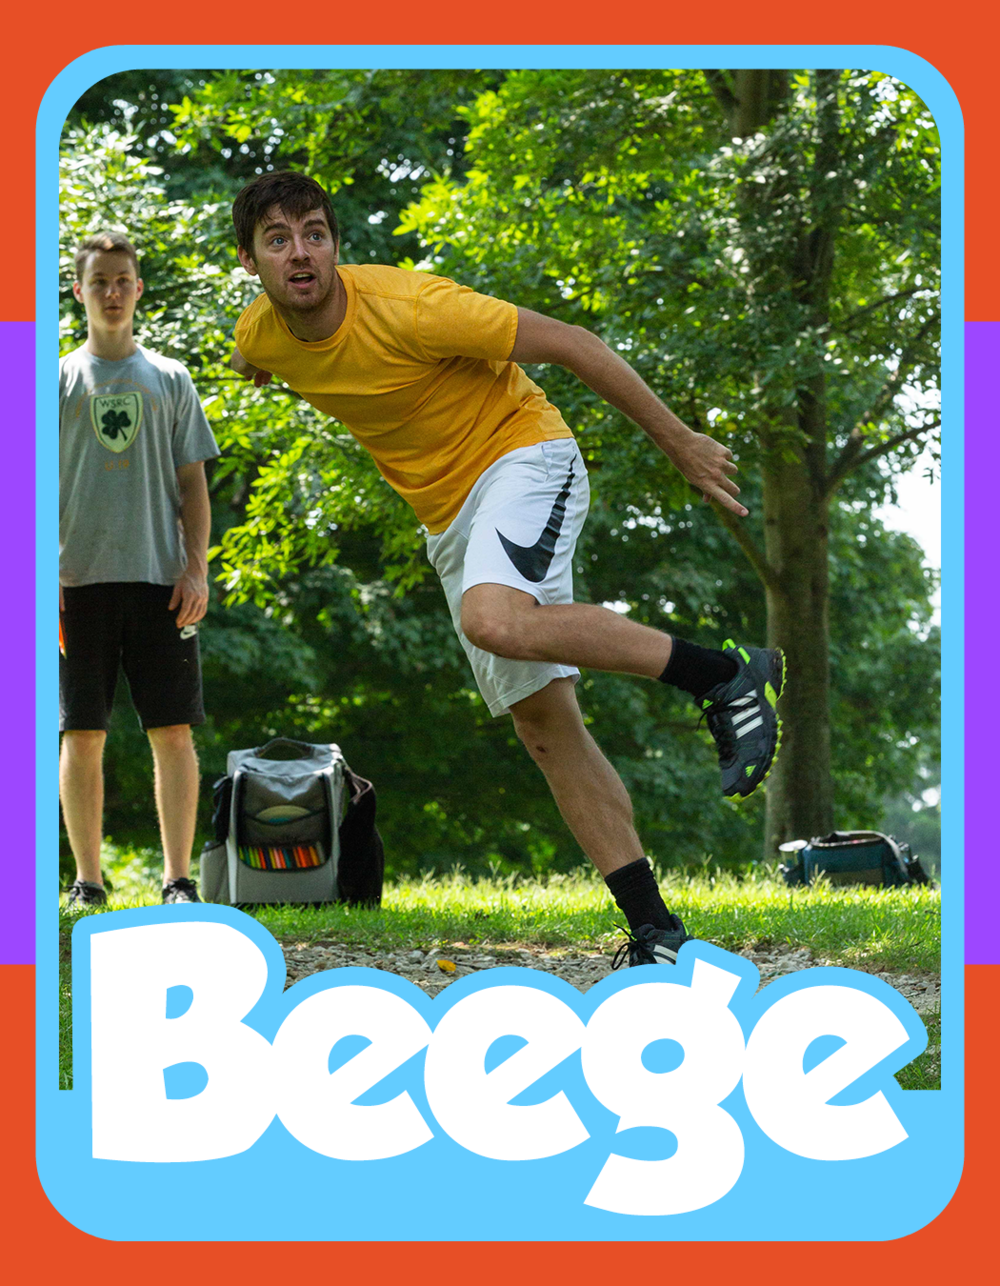 Brady Pierce - The Beege was one of the first members of Summer Flings. He started as a lefty-forehand player than decided to re-build his game from the ground up just to show people that either hand is capable of throwing a disc. He's already won a Major Tournament this year and now he's hungry for the Championship.